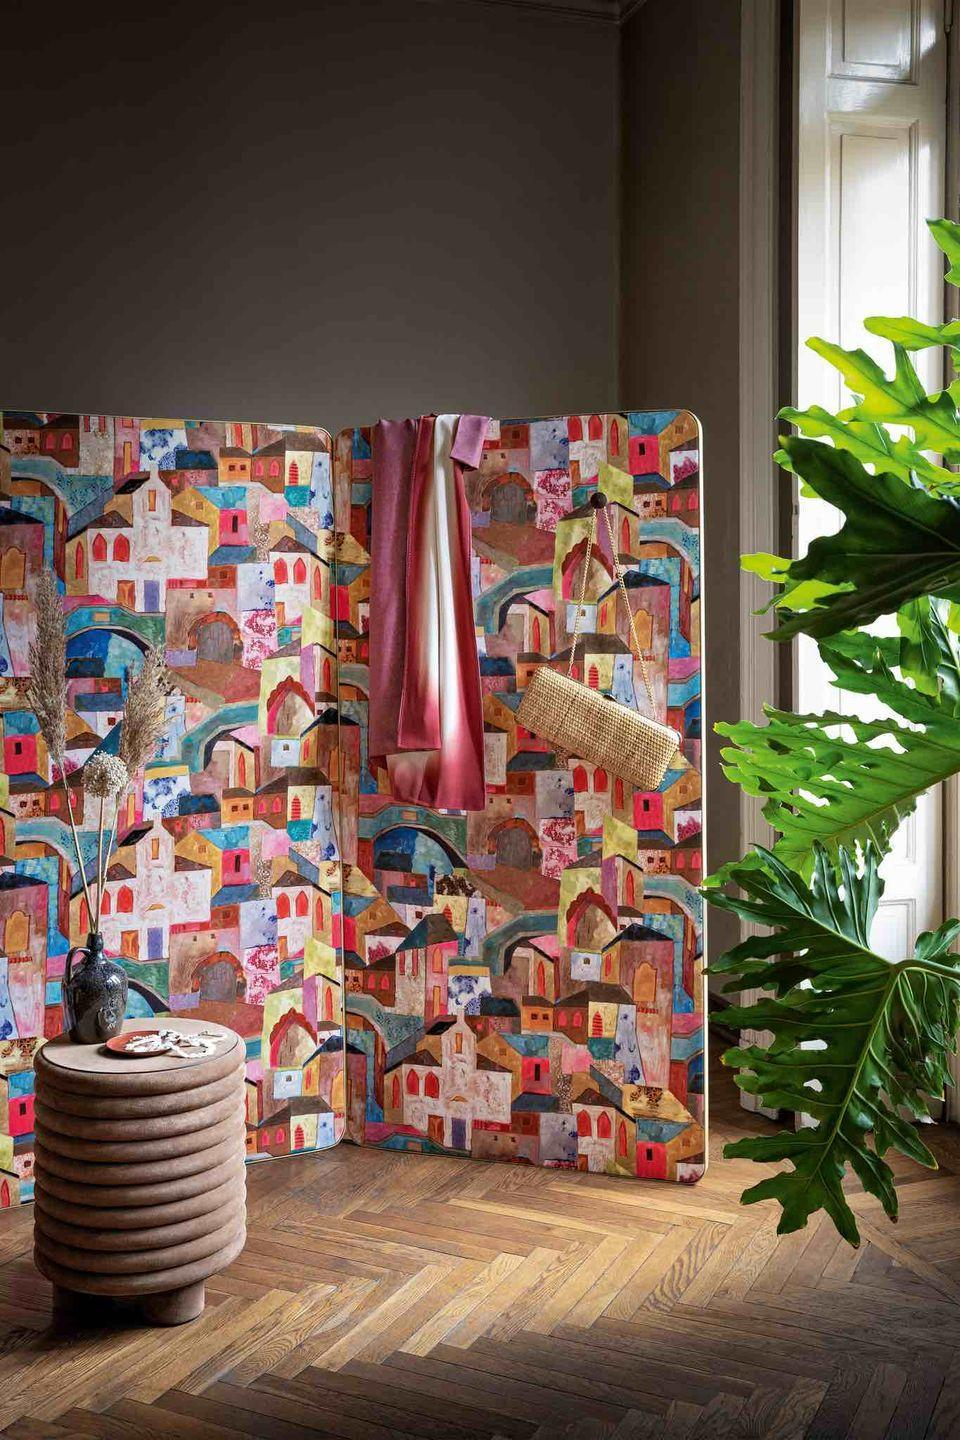 """<p>Introduce a loud pattern on a screen in an otherwise neutrally decorated room. Team with upholstery in the more subtle tones found in the pattern to maintain a level of sophistication. 'Burano' fabric, £113 per metre, <a href=""""http://www.rubelli.com/en/products/textiles/burano-30411.html"""" rel=""""nofollow noopener"""" target=""""_blank"""" data-ylk=""""slk:rubelli.com"""" class=""""link rapid-noclick-resp"""">rubelli.com</a></p>"""